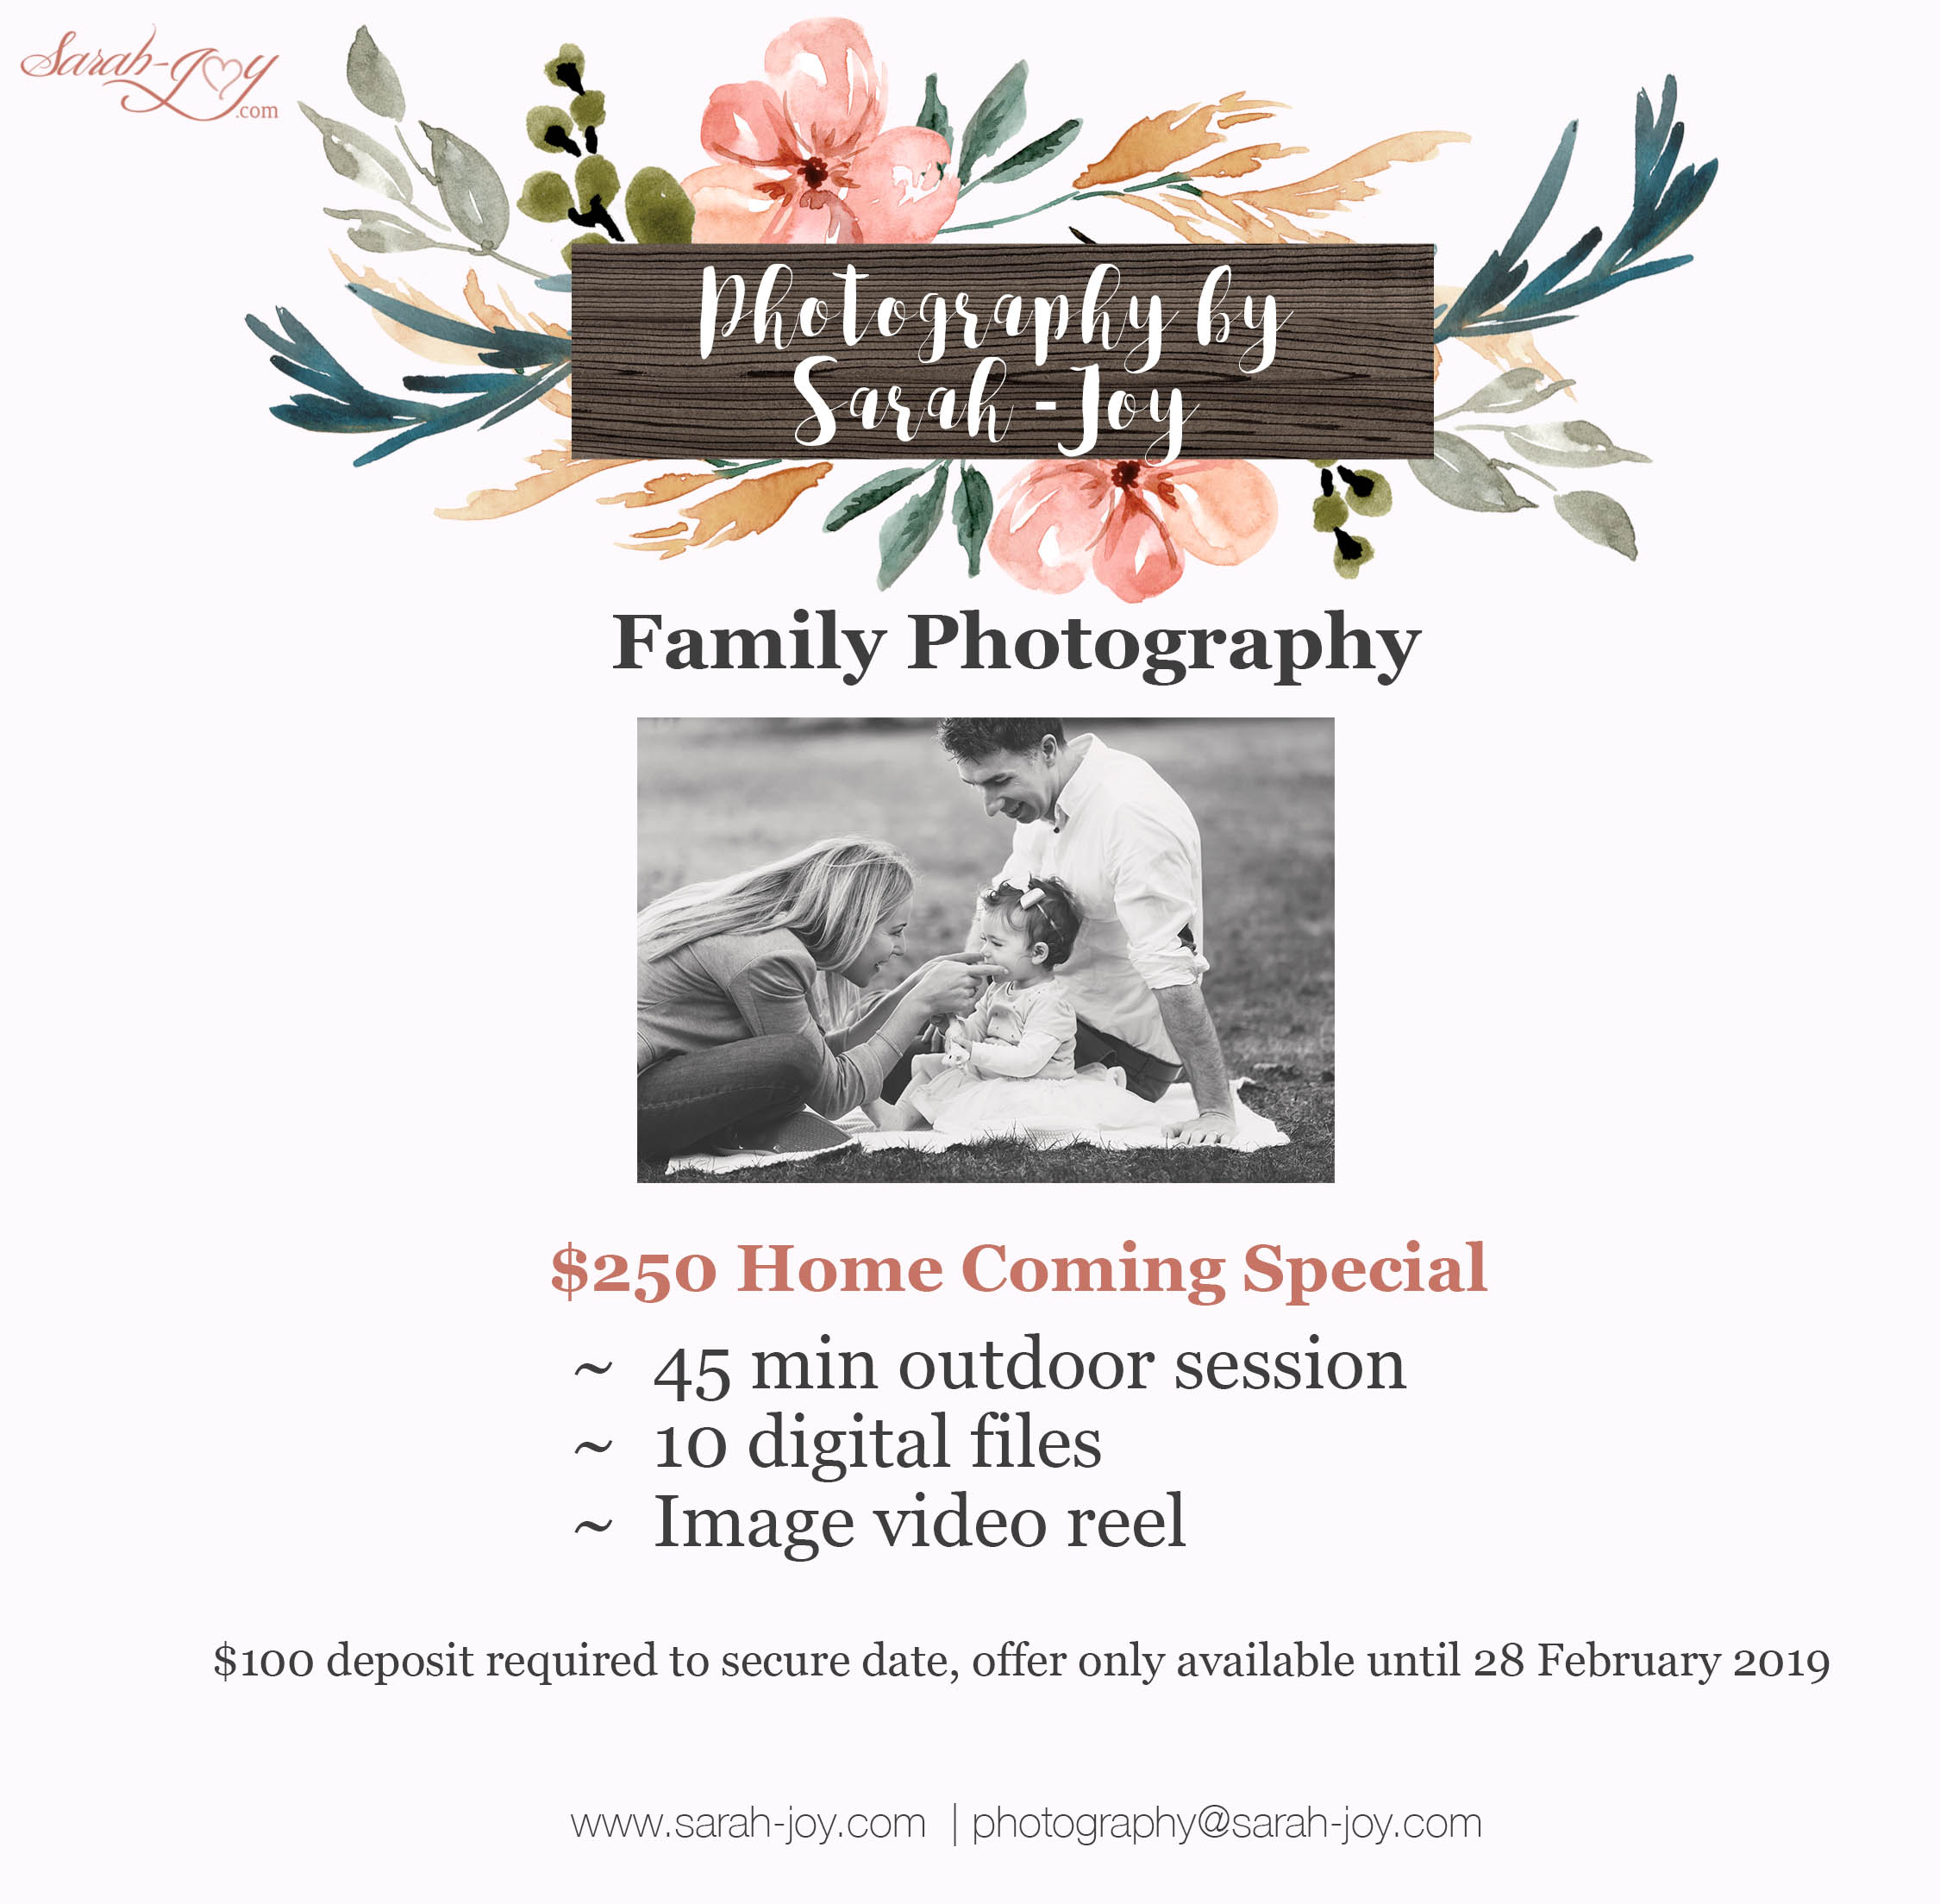 Fitzroy Photographer family photoshoot special offer